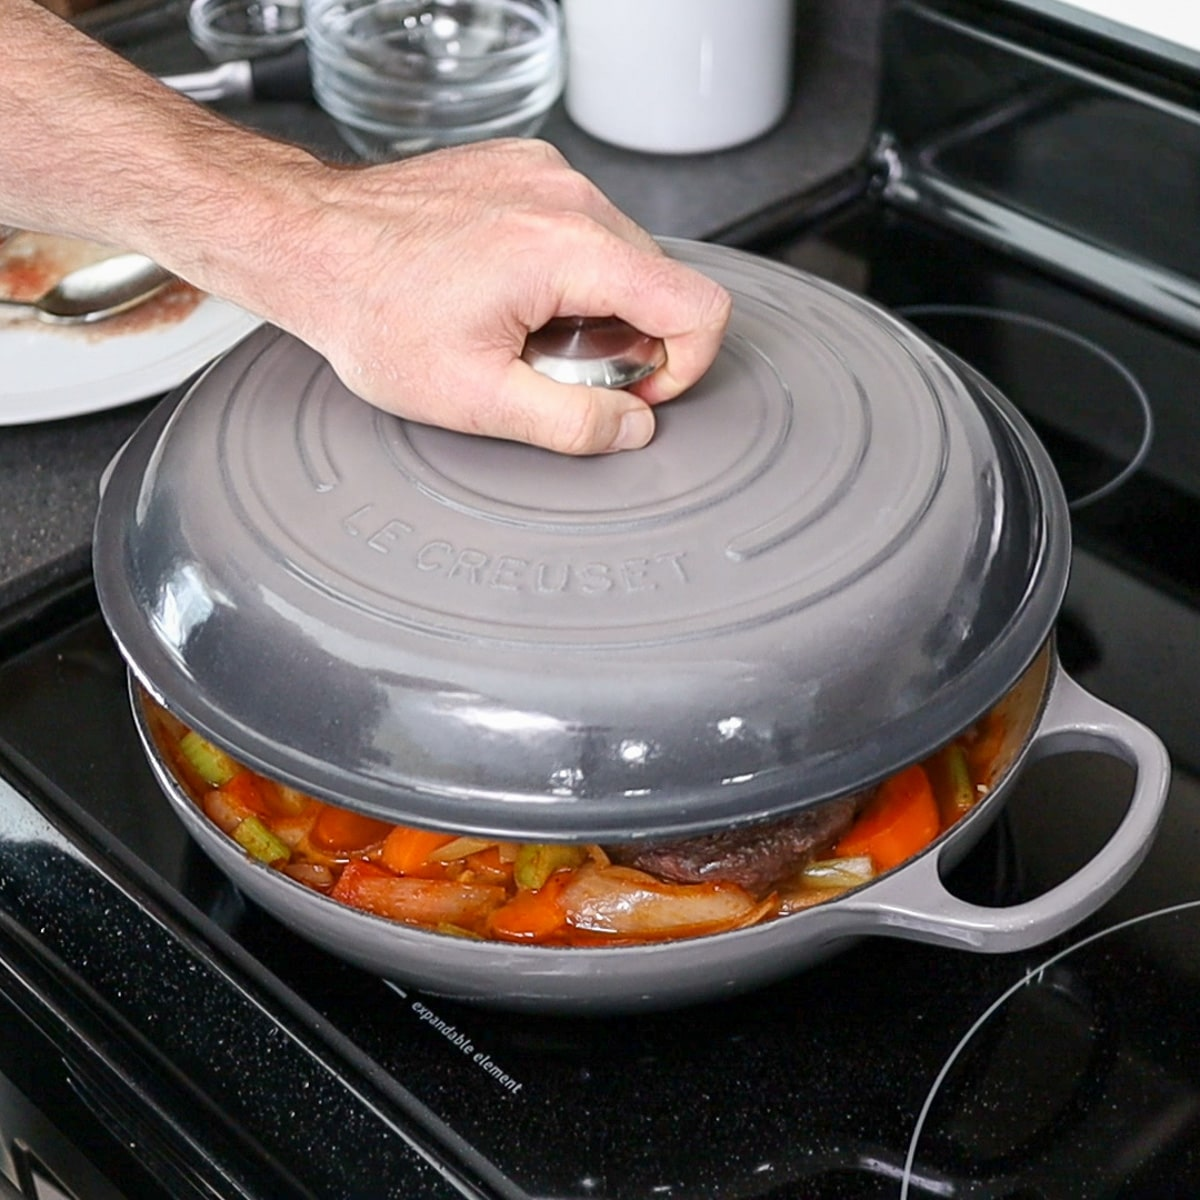 putting the lid on the pan